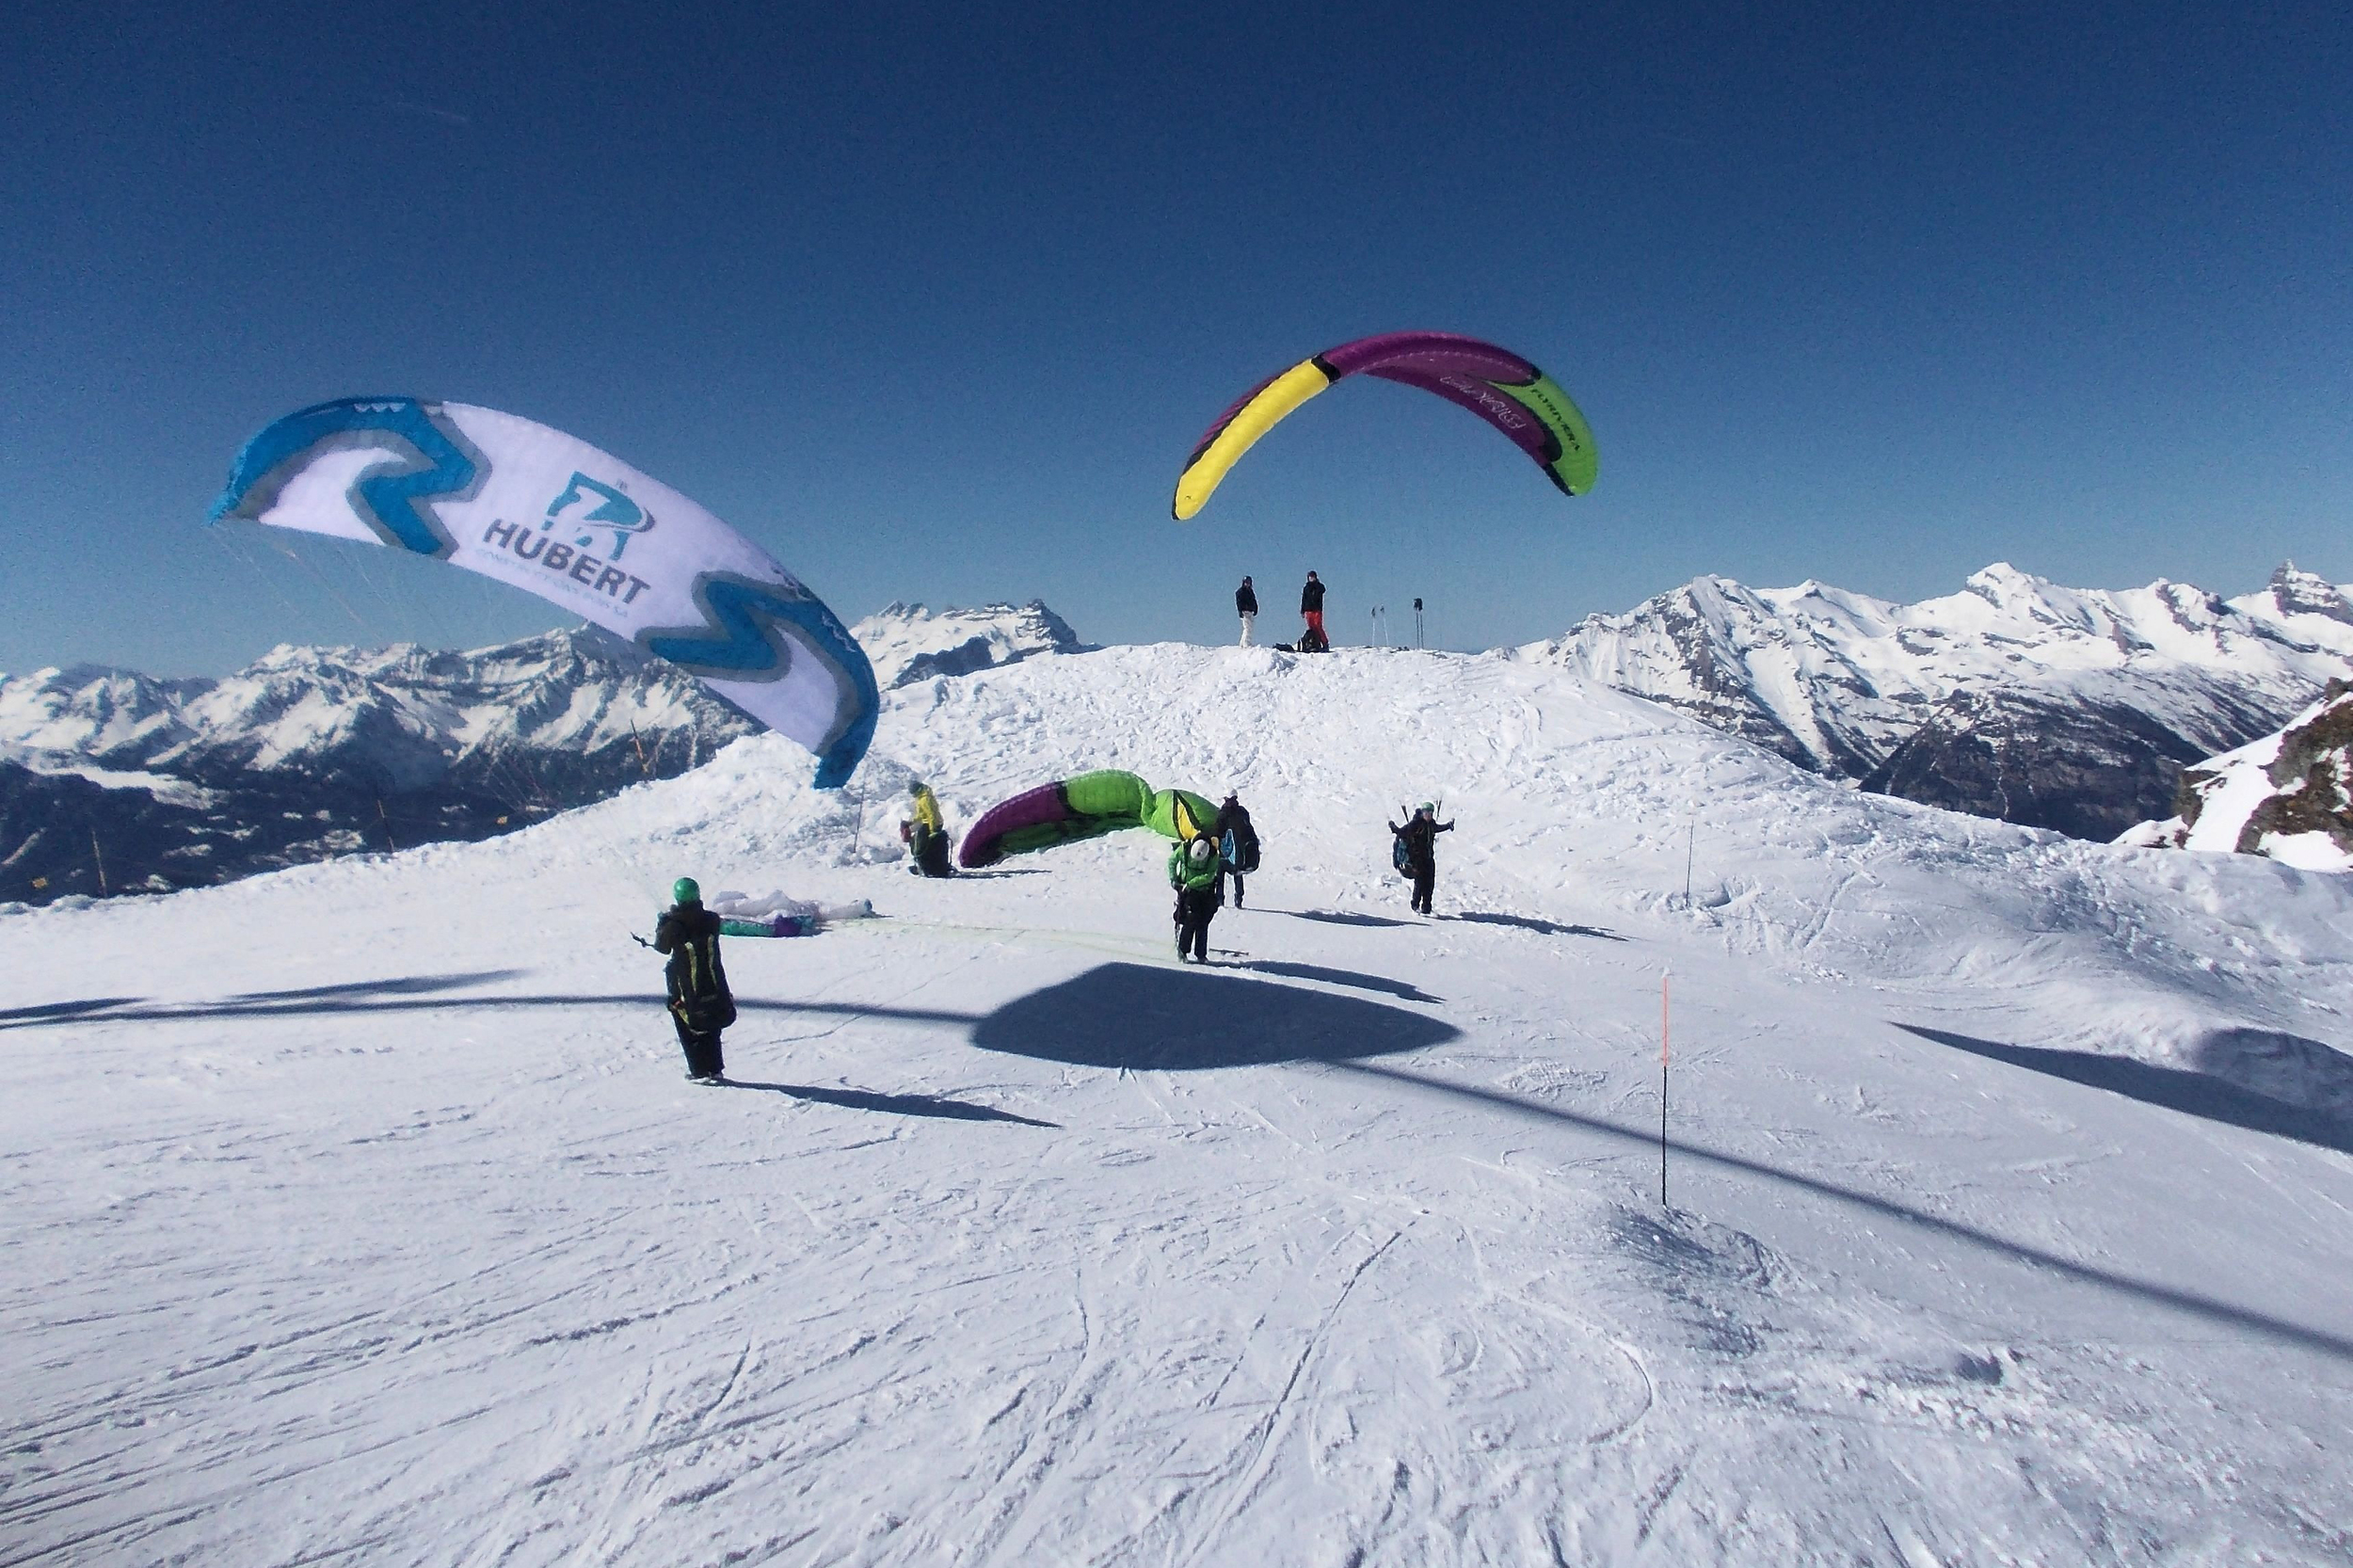 Group of paragliders land on snow